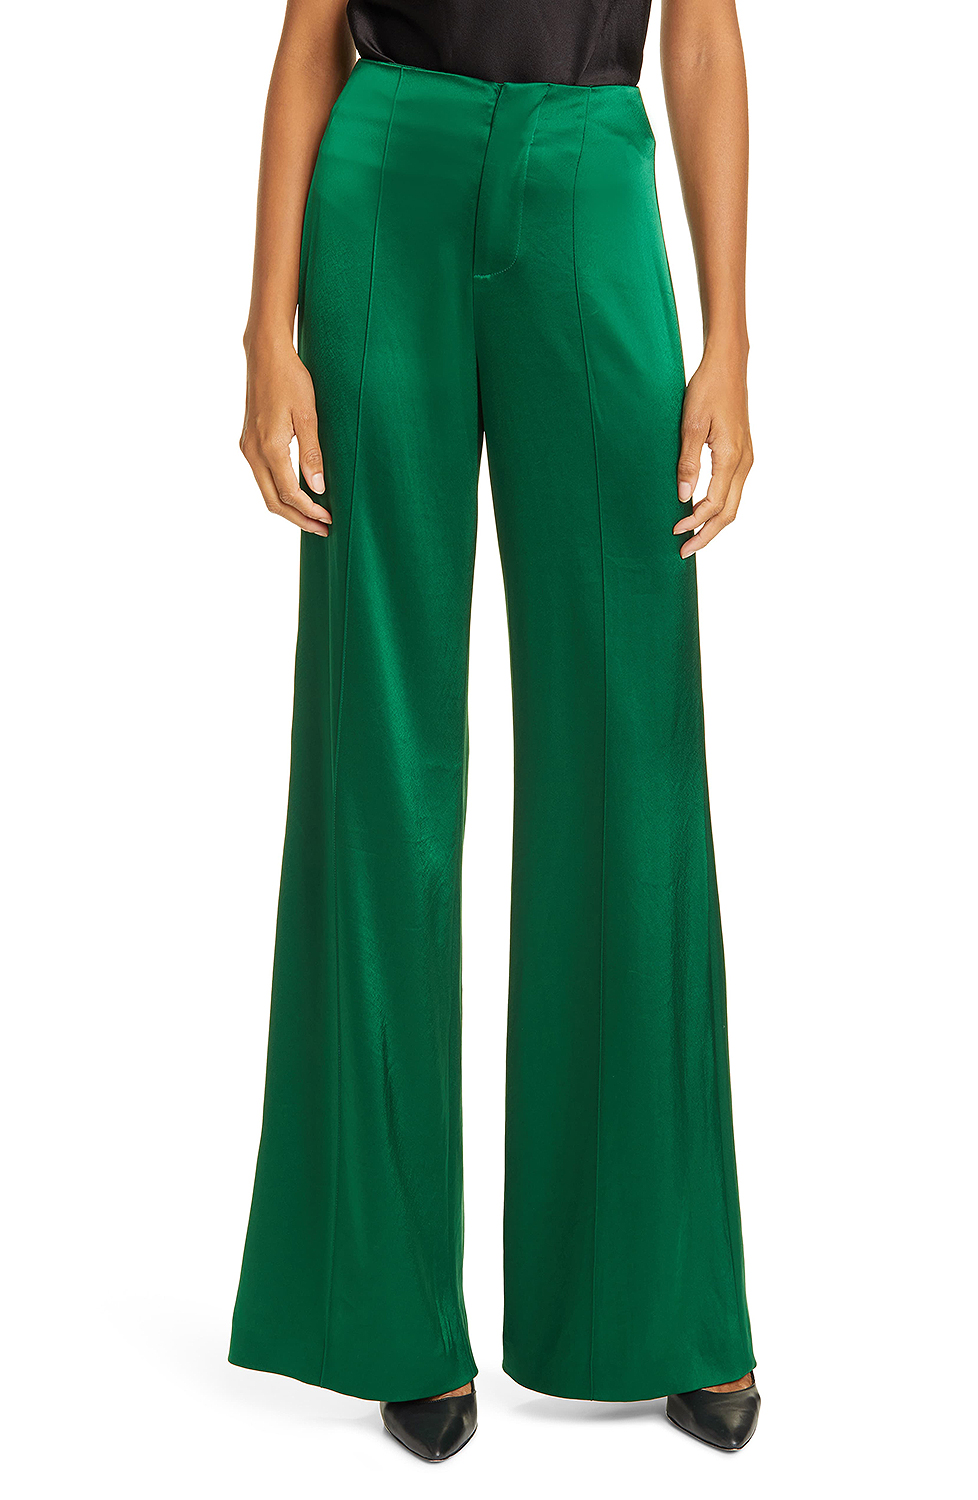 green satin pants from nordstrom